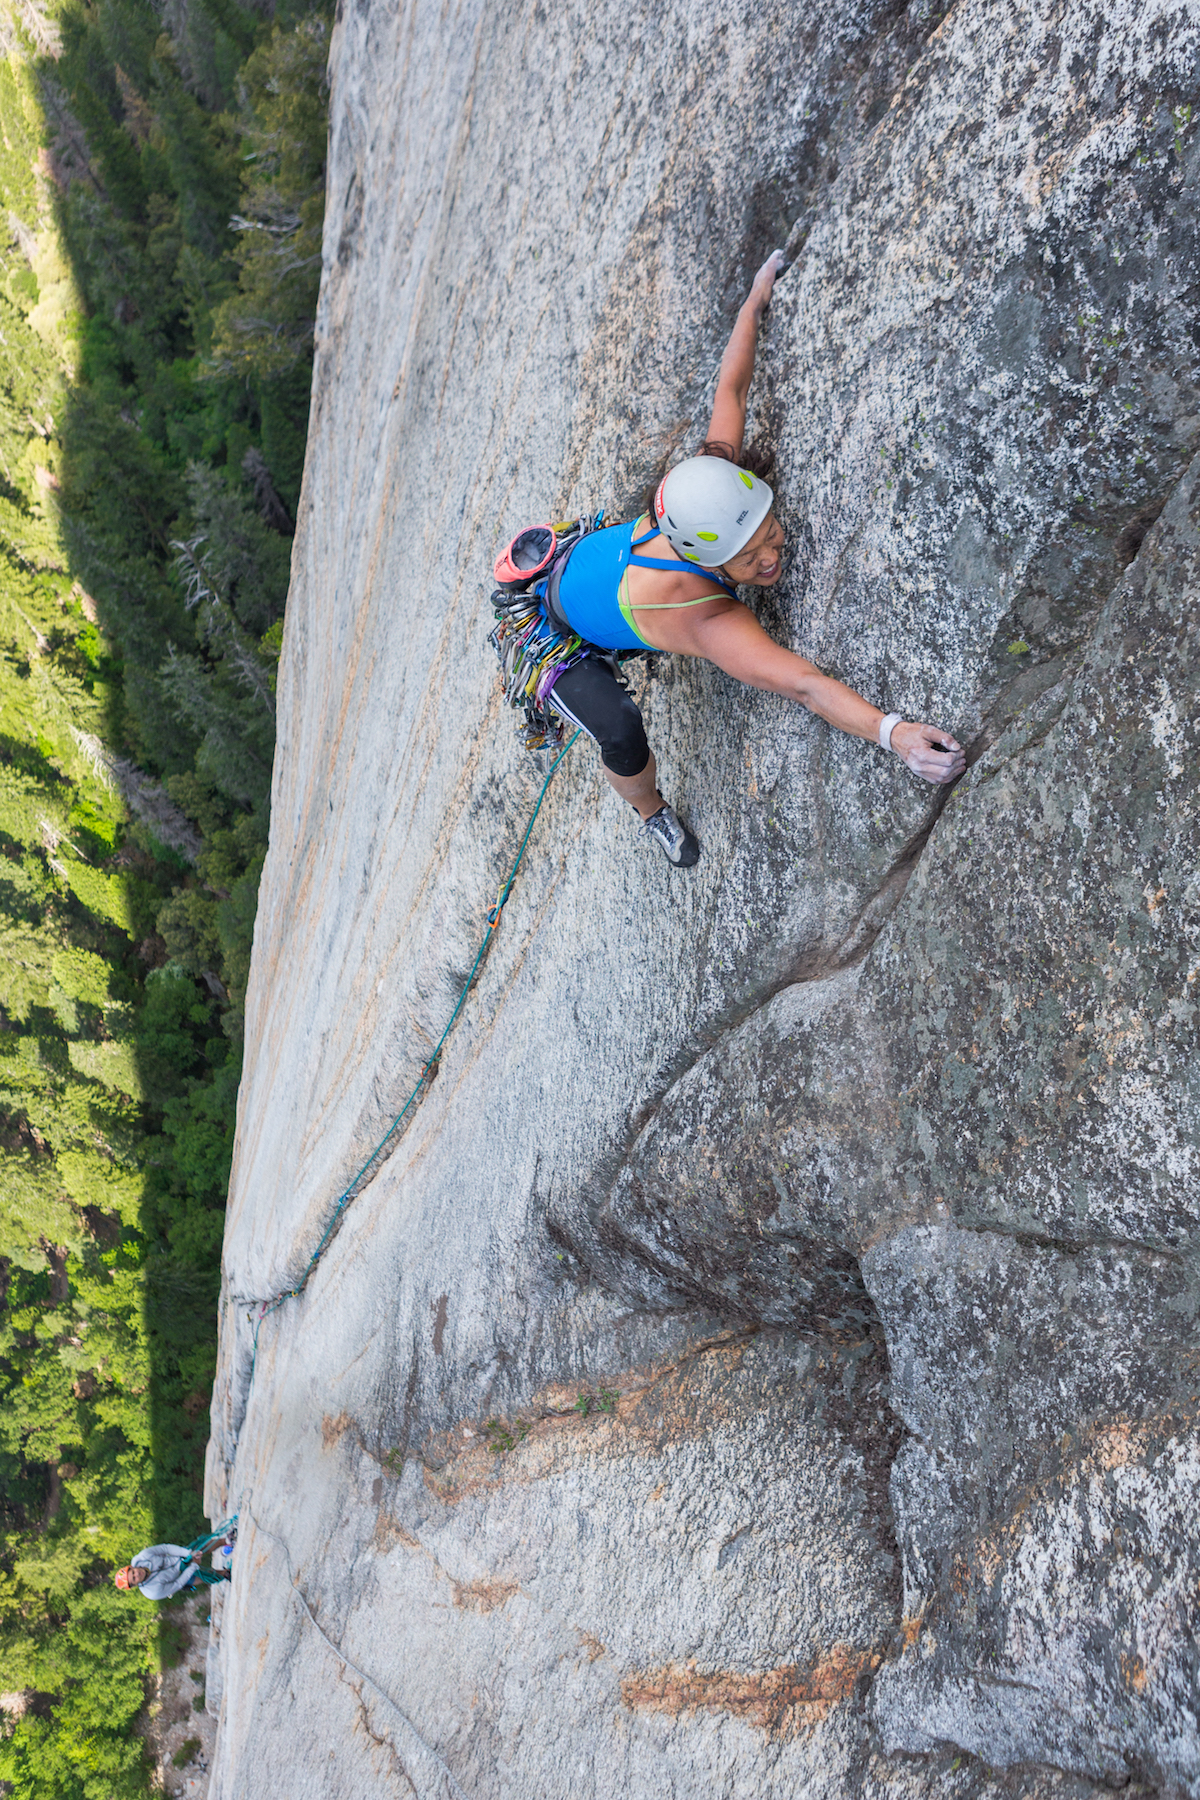 Rita Shin fires Cosmic Girl (5.12+, 1,200') on Yosemite's Middle Cathedral. The route starts on the Chouinard-Pratt route—which is the same start as the modern version of the extremely popular Central Pillar of Frenzy (5.9)—but Cosmic Girl continues straight up where the Central Pillar traverses left into another crack system. [Photo] John Evans